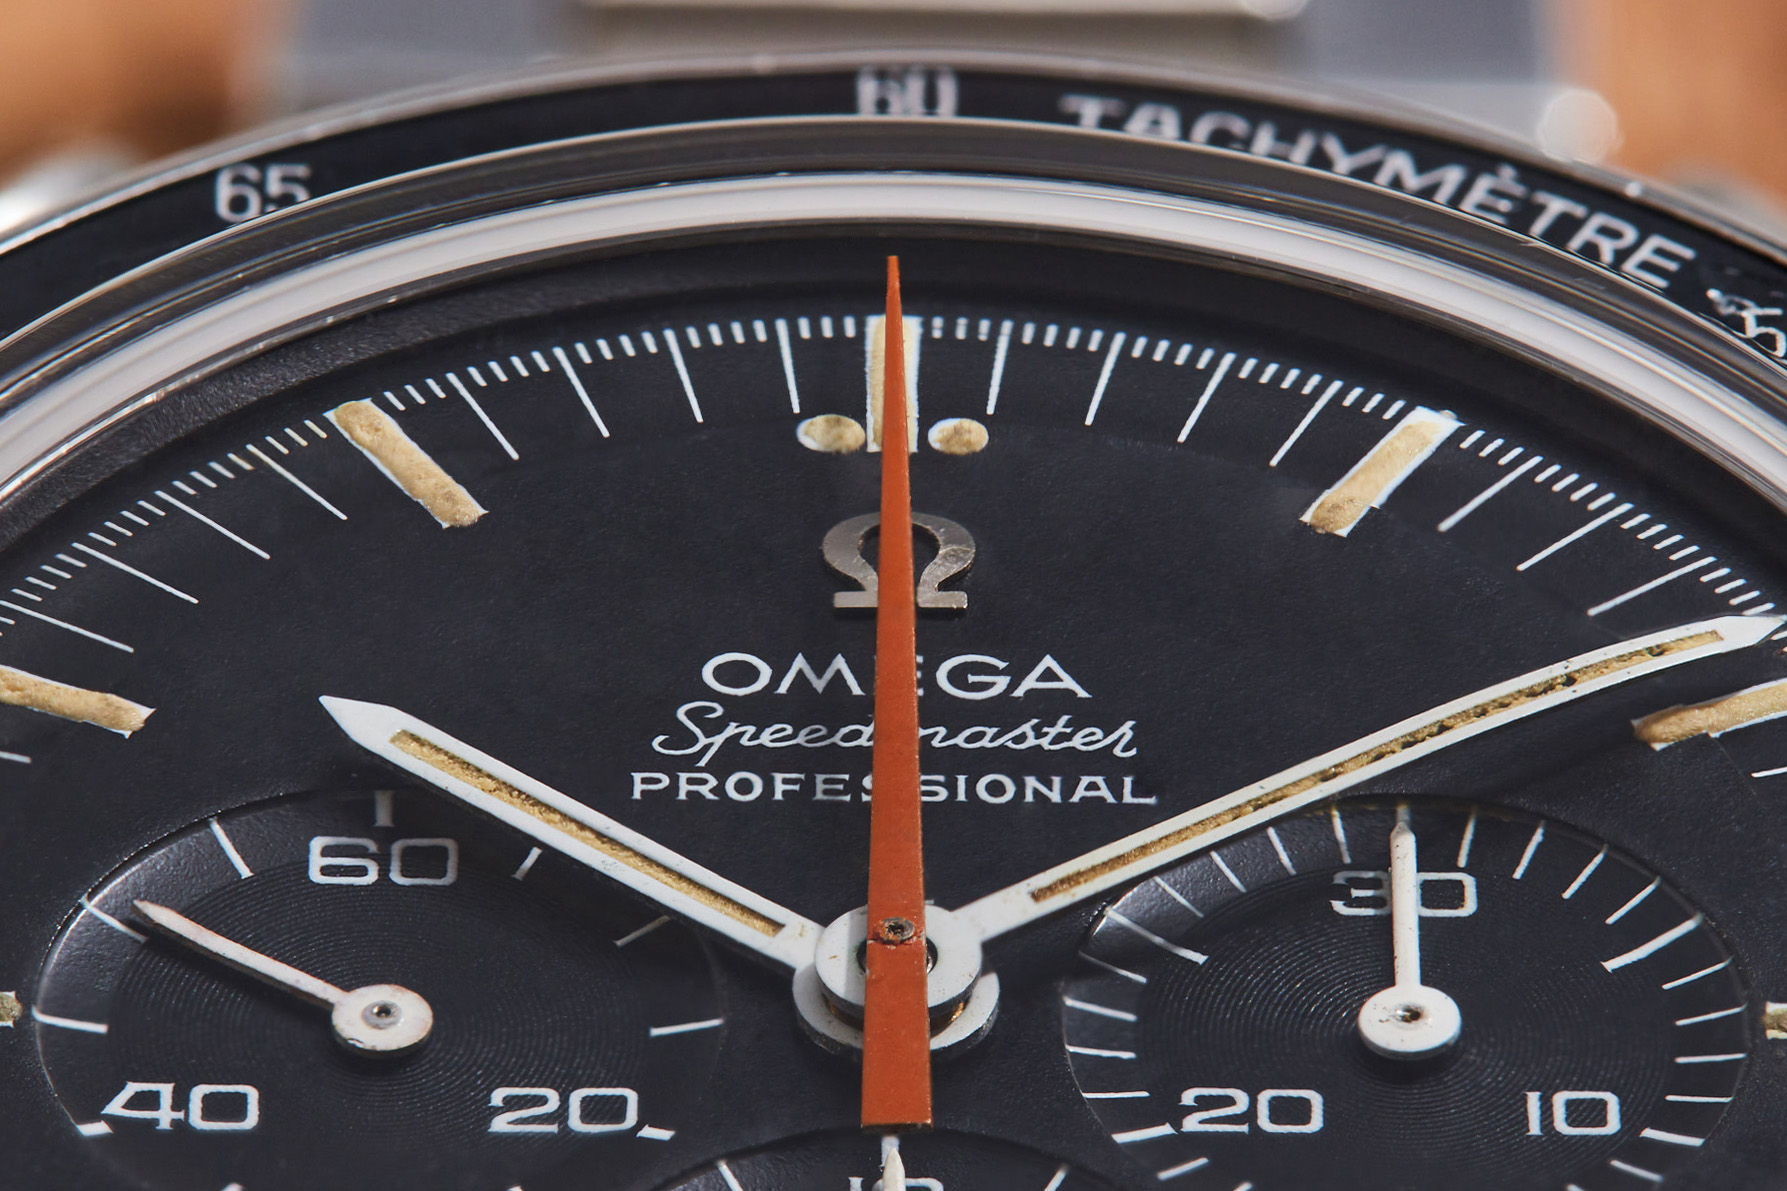 Omega_Speedmaster_Professional_Ultraman_Extract_AS02680_IG2 site.jpg